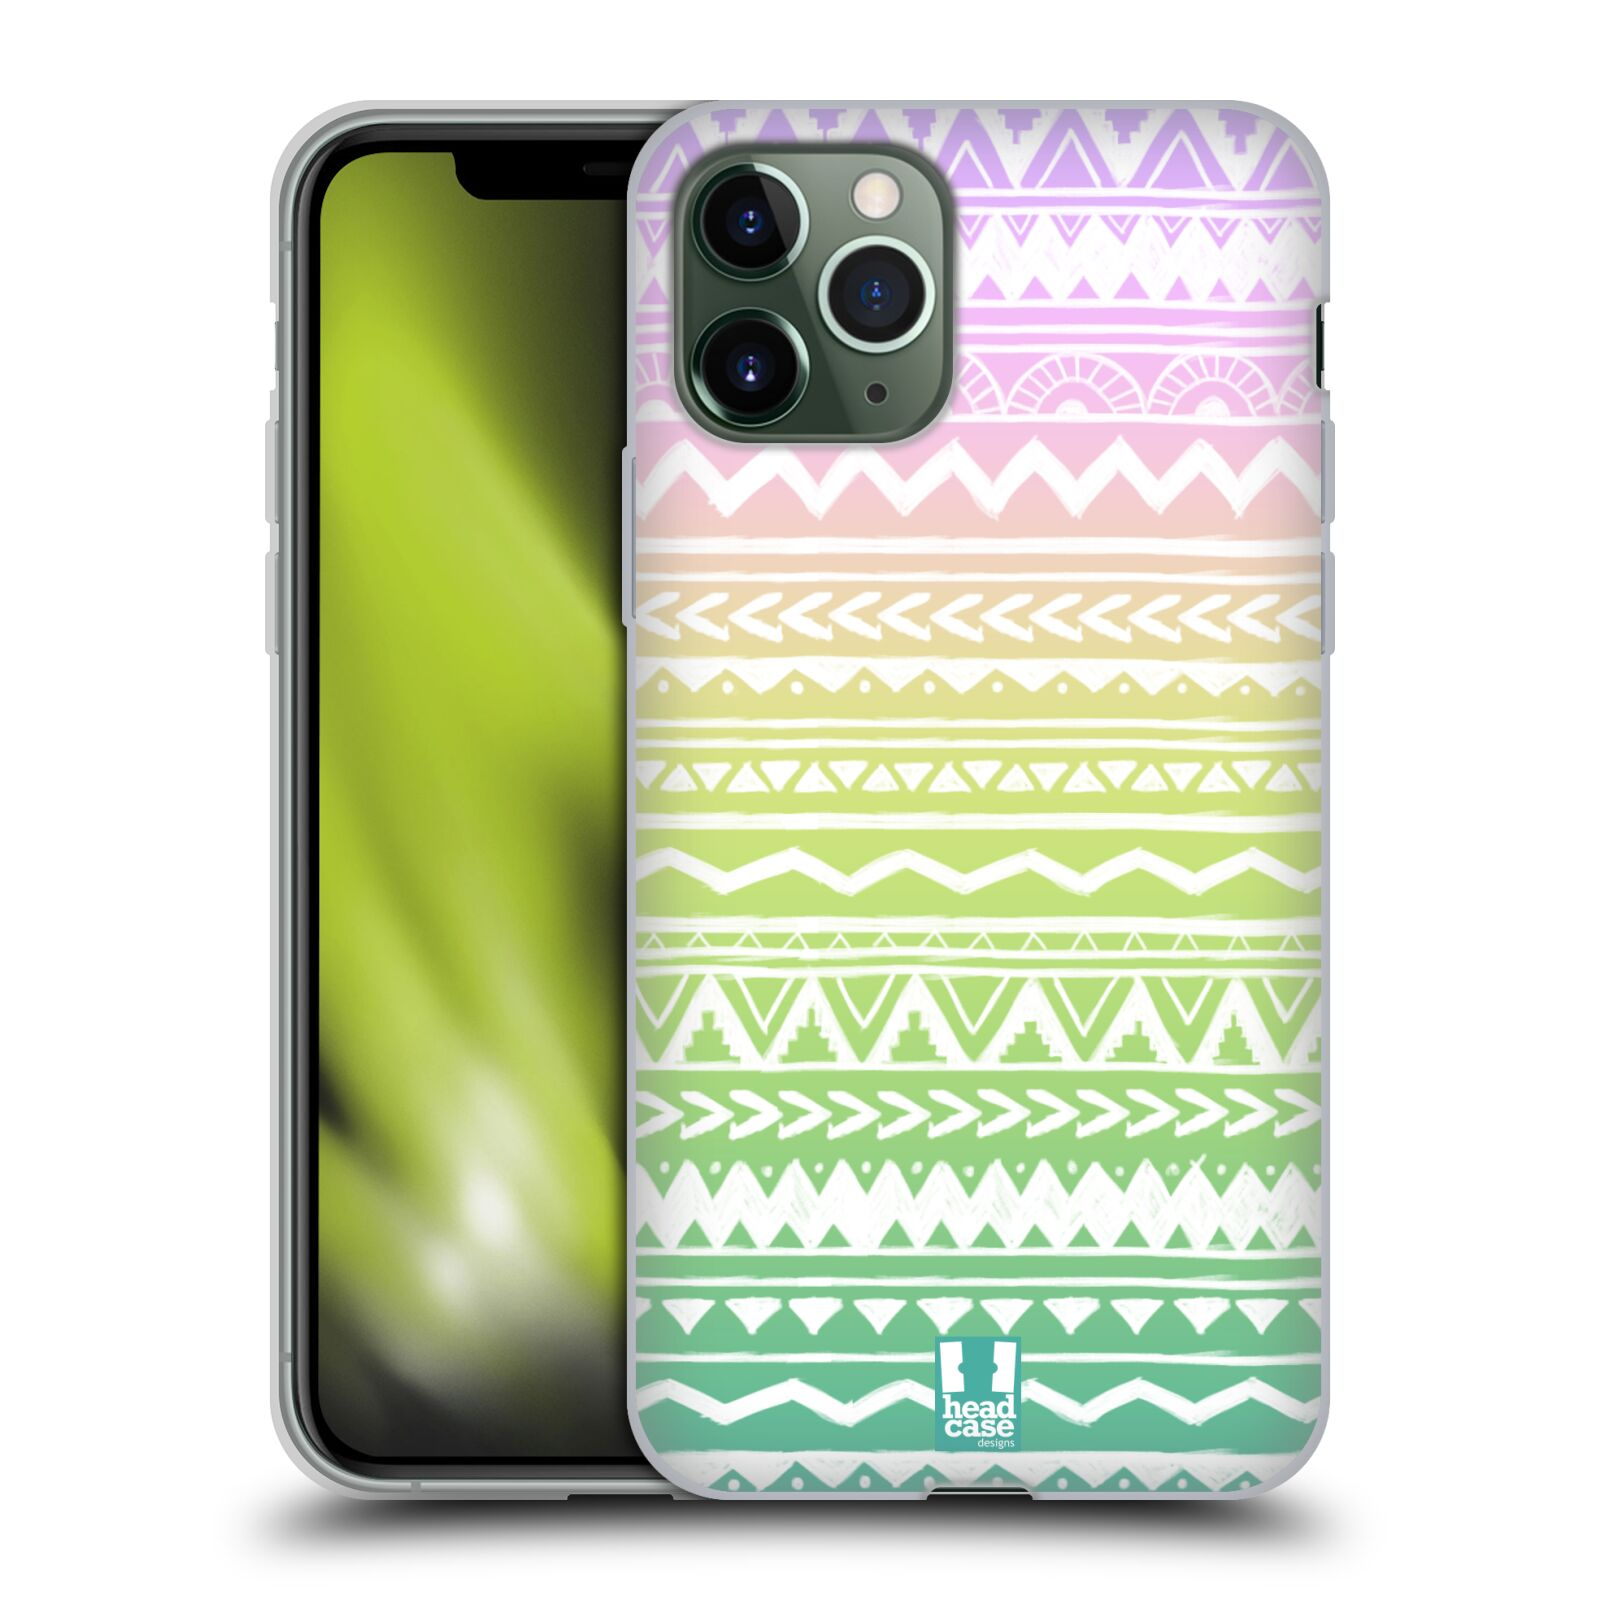 iphone 6 s plus kryt | Silikonové pouzdro na mobil Apple iPhone 11 Pro - Head Case - MIX AZTEC DRAWN